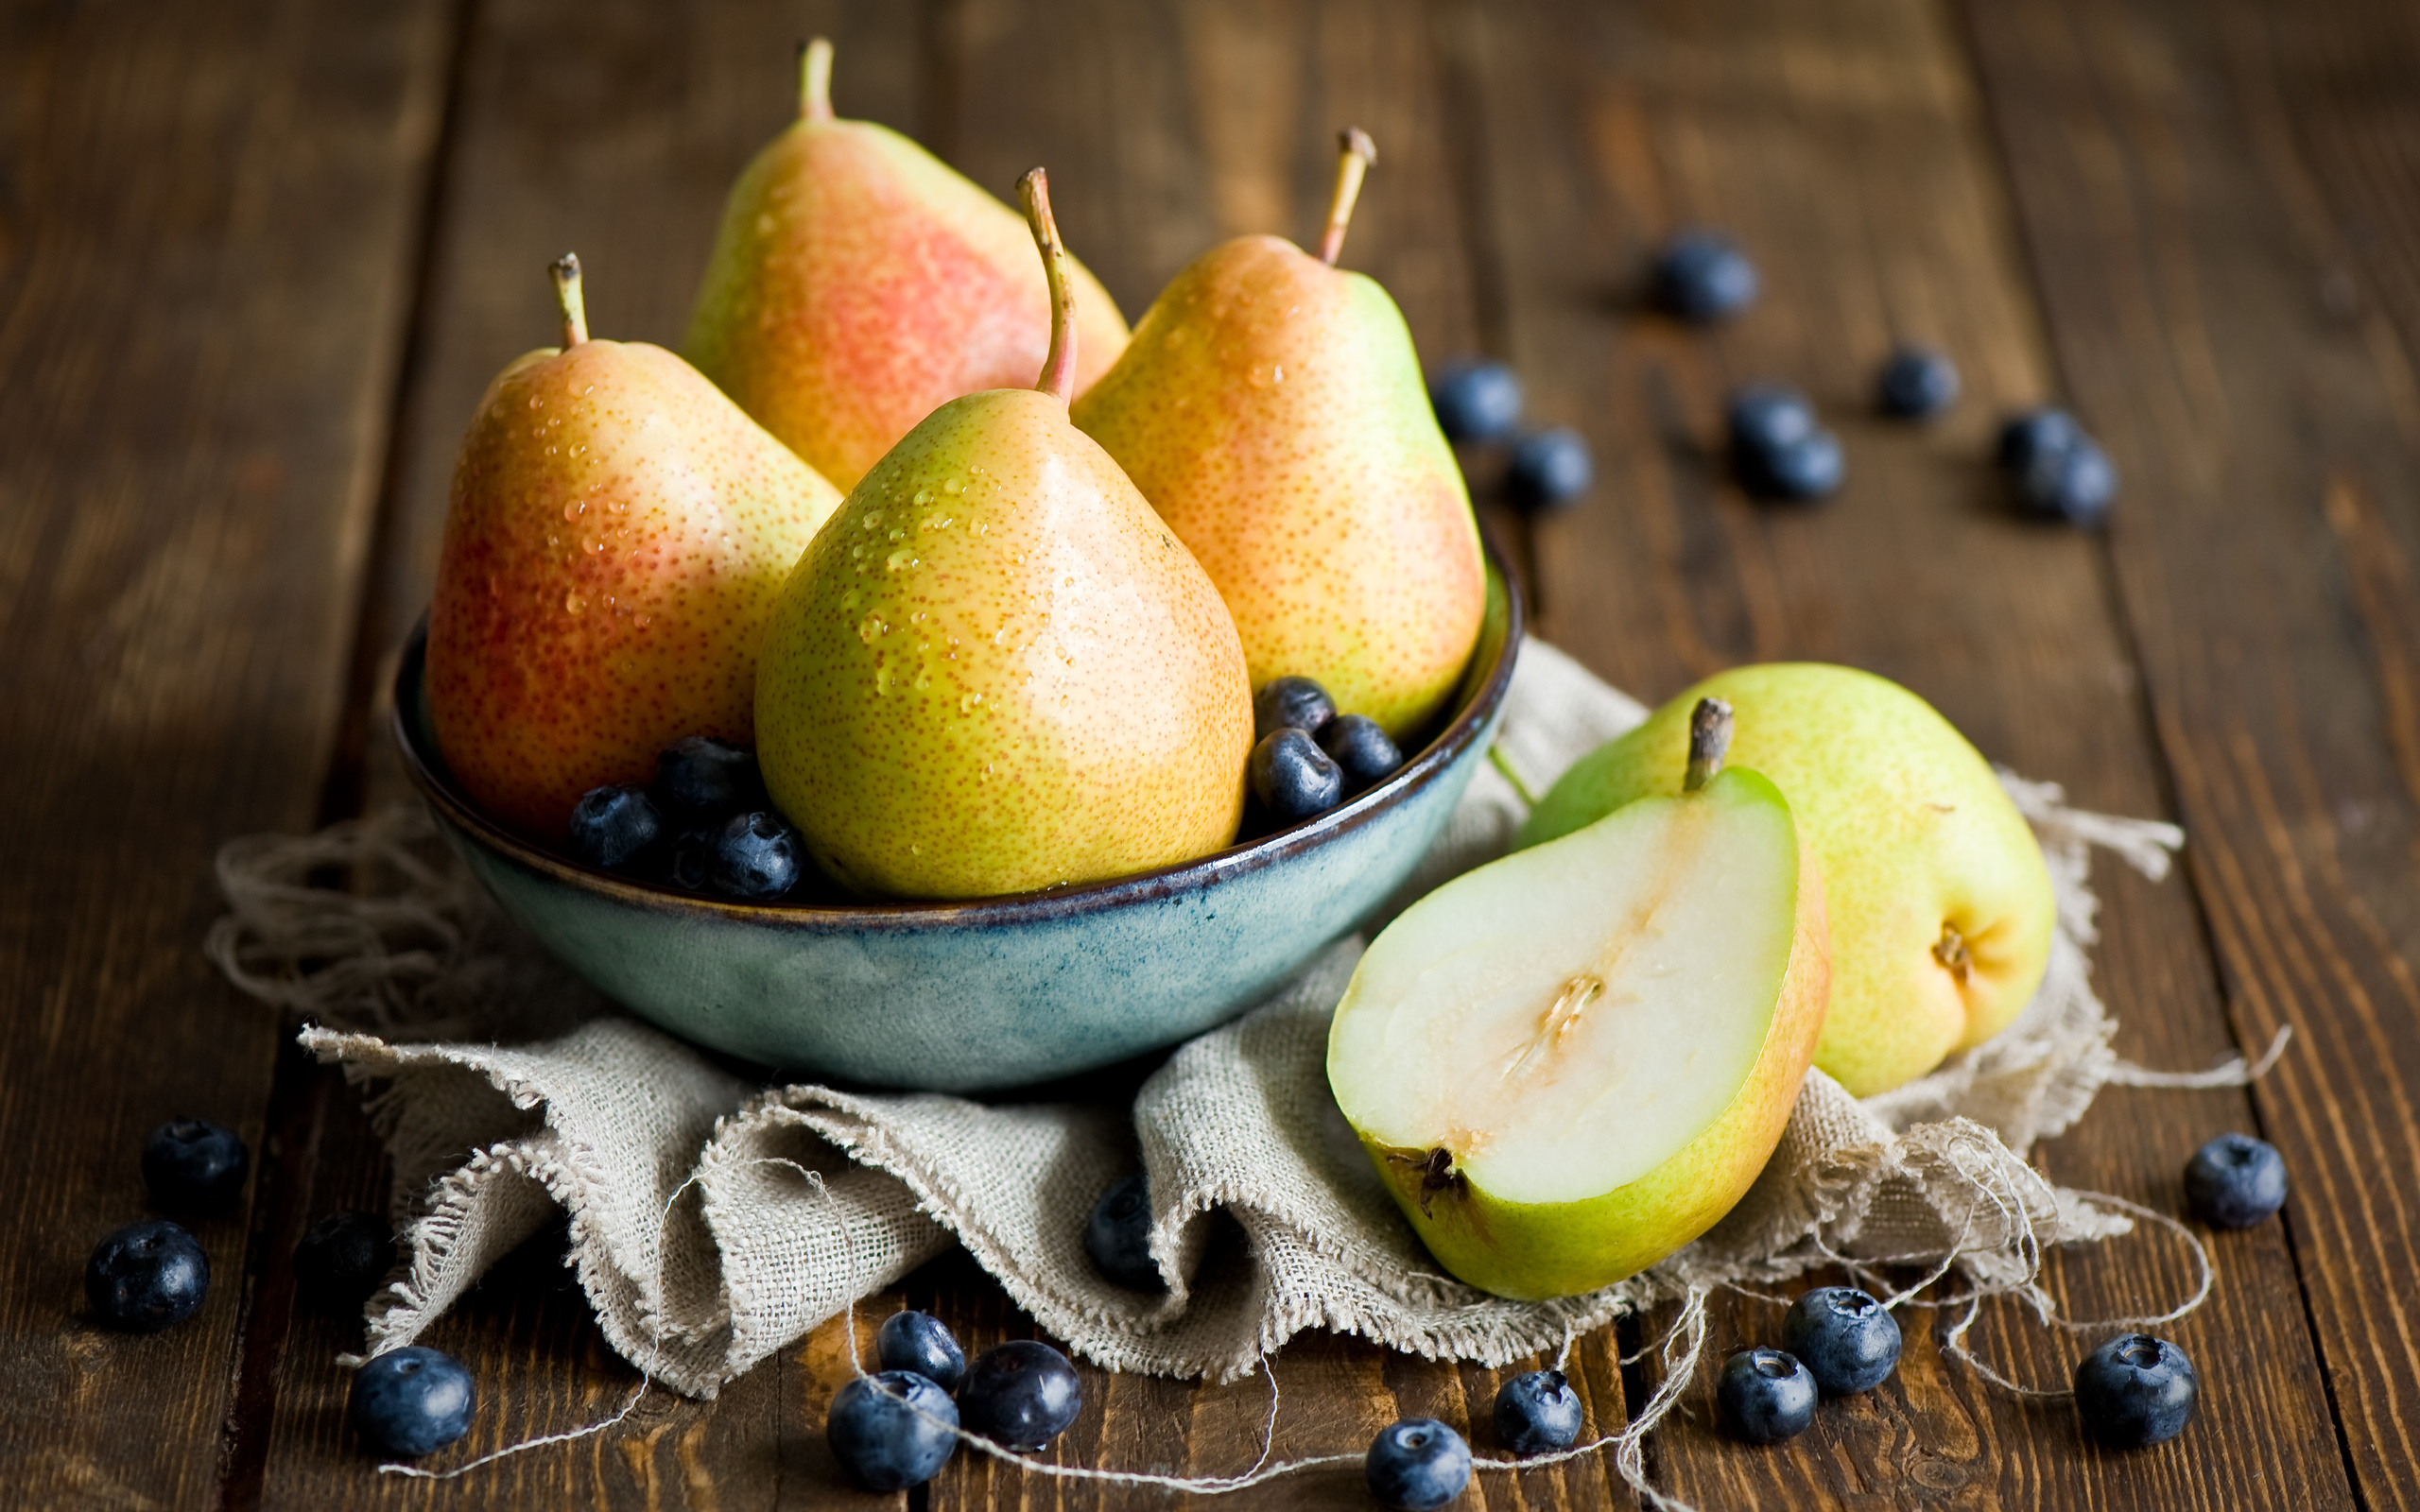 Pear Computer Wallpapers, Desktop Backgrounds 2560x1600 Id ...